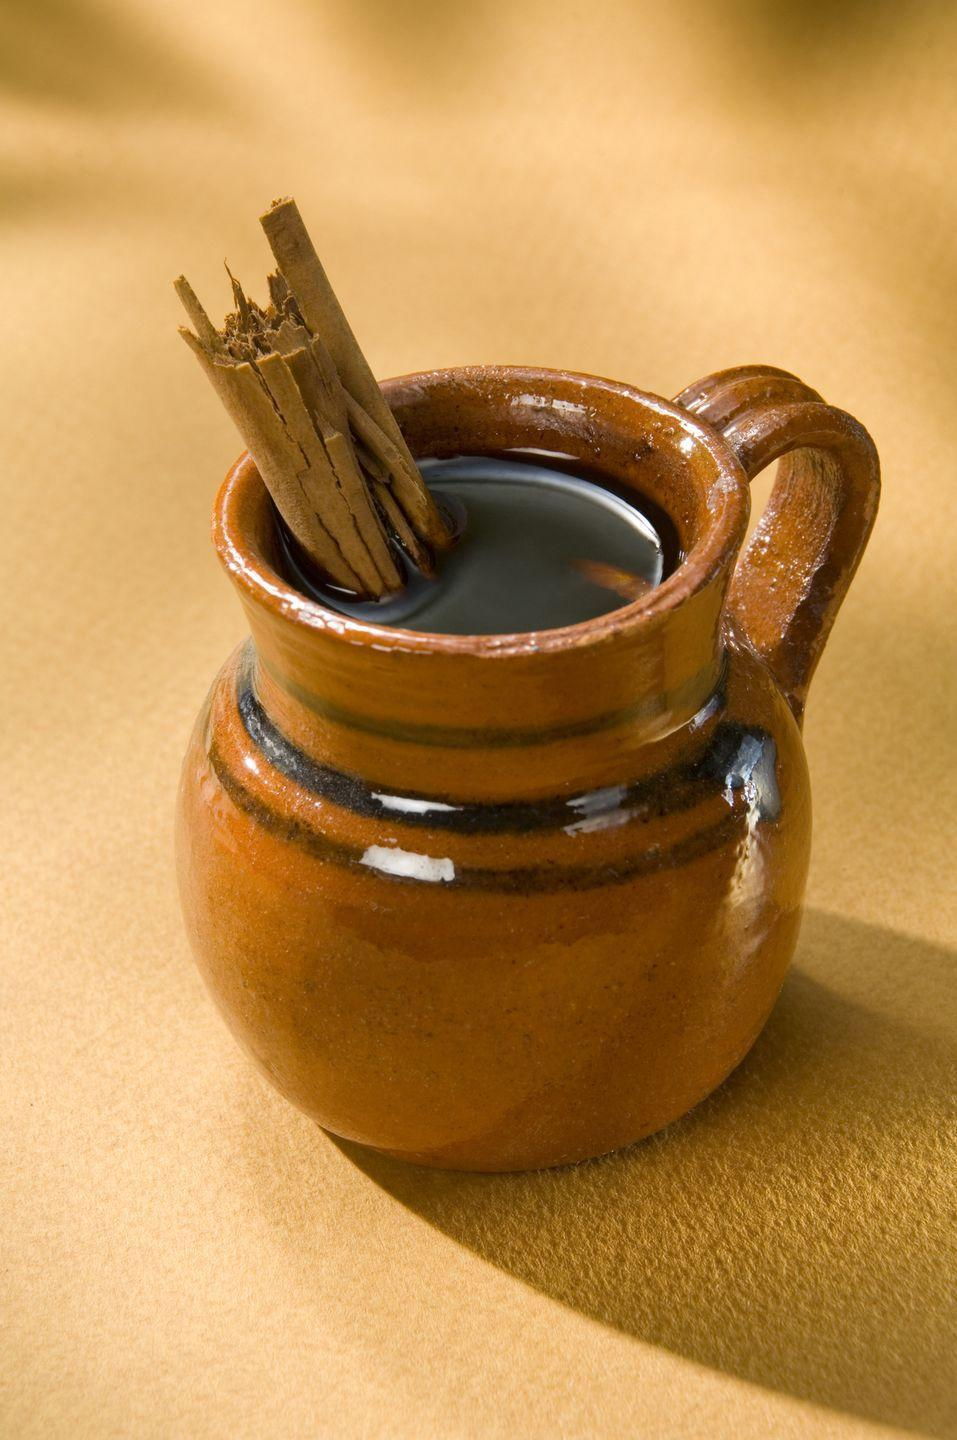 "<p>Café de olla is a Mexican coffee traditionally prepared in an earthen pot with ground coffee, cinnamon, and raw dark sugar called piloncillo. Other optional elements include cloves, star anise, and orange rind. </p><p><strong>Pro tip: </strong>This sweet, spicy brew is great for the winter months, but can also be enjoyed year-round. <br></p><p><em><a href=""https://www.mexicoinmykitchen.com/cafe-de-olla-recipe/"" rel=""nofollow noopener"" target=""_blank"" data-ylk=""slk:Get the recipe for Mexican Coffee from Mexico in my Kitchen »"" class=""link rapid-noclick-resp"">Get the recipe for Mexican Coffee from Mexico in my Kitchen »</a></em></p>"